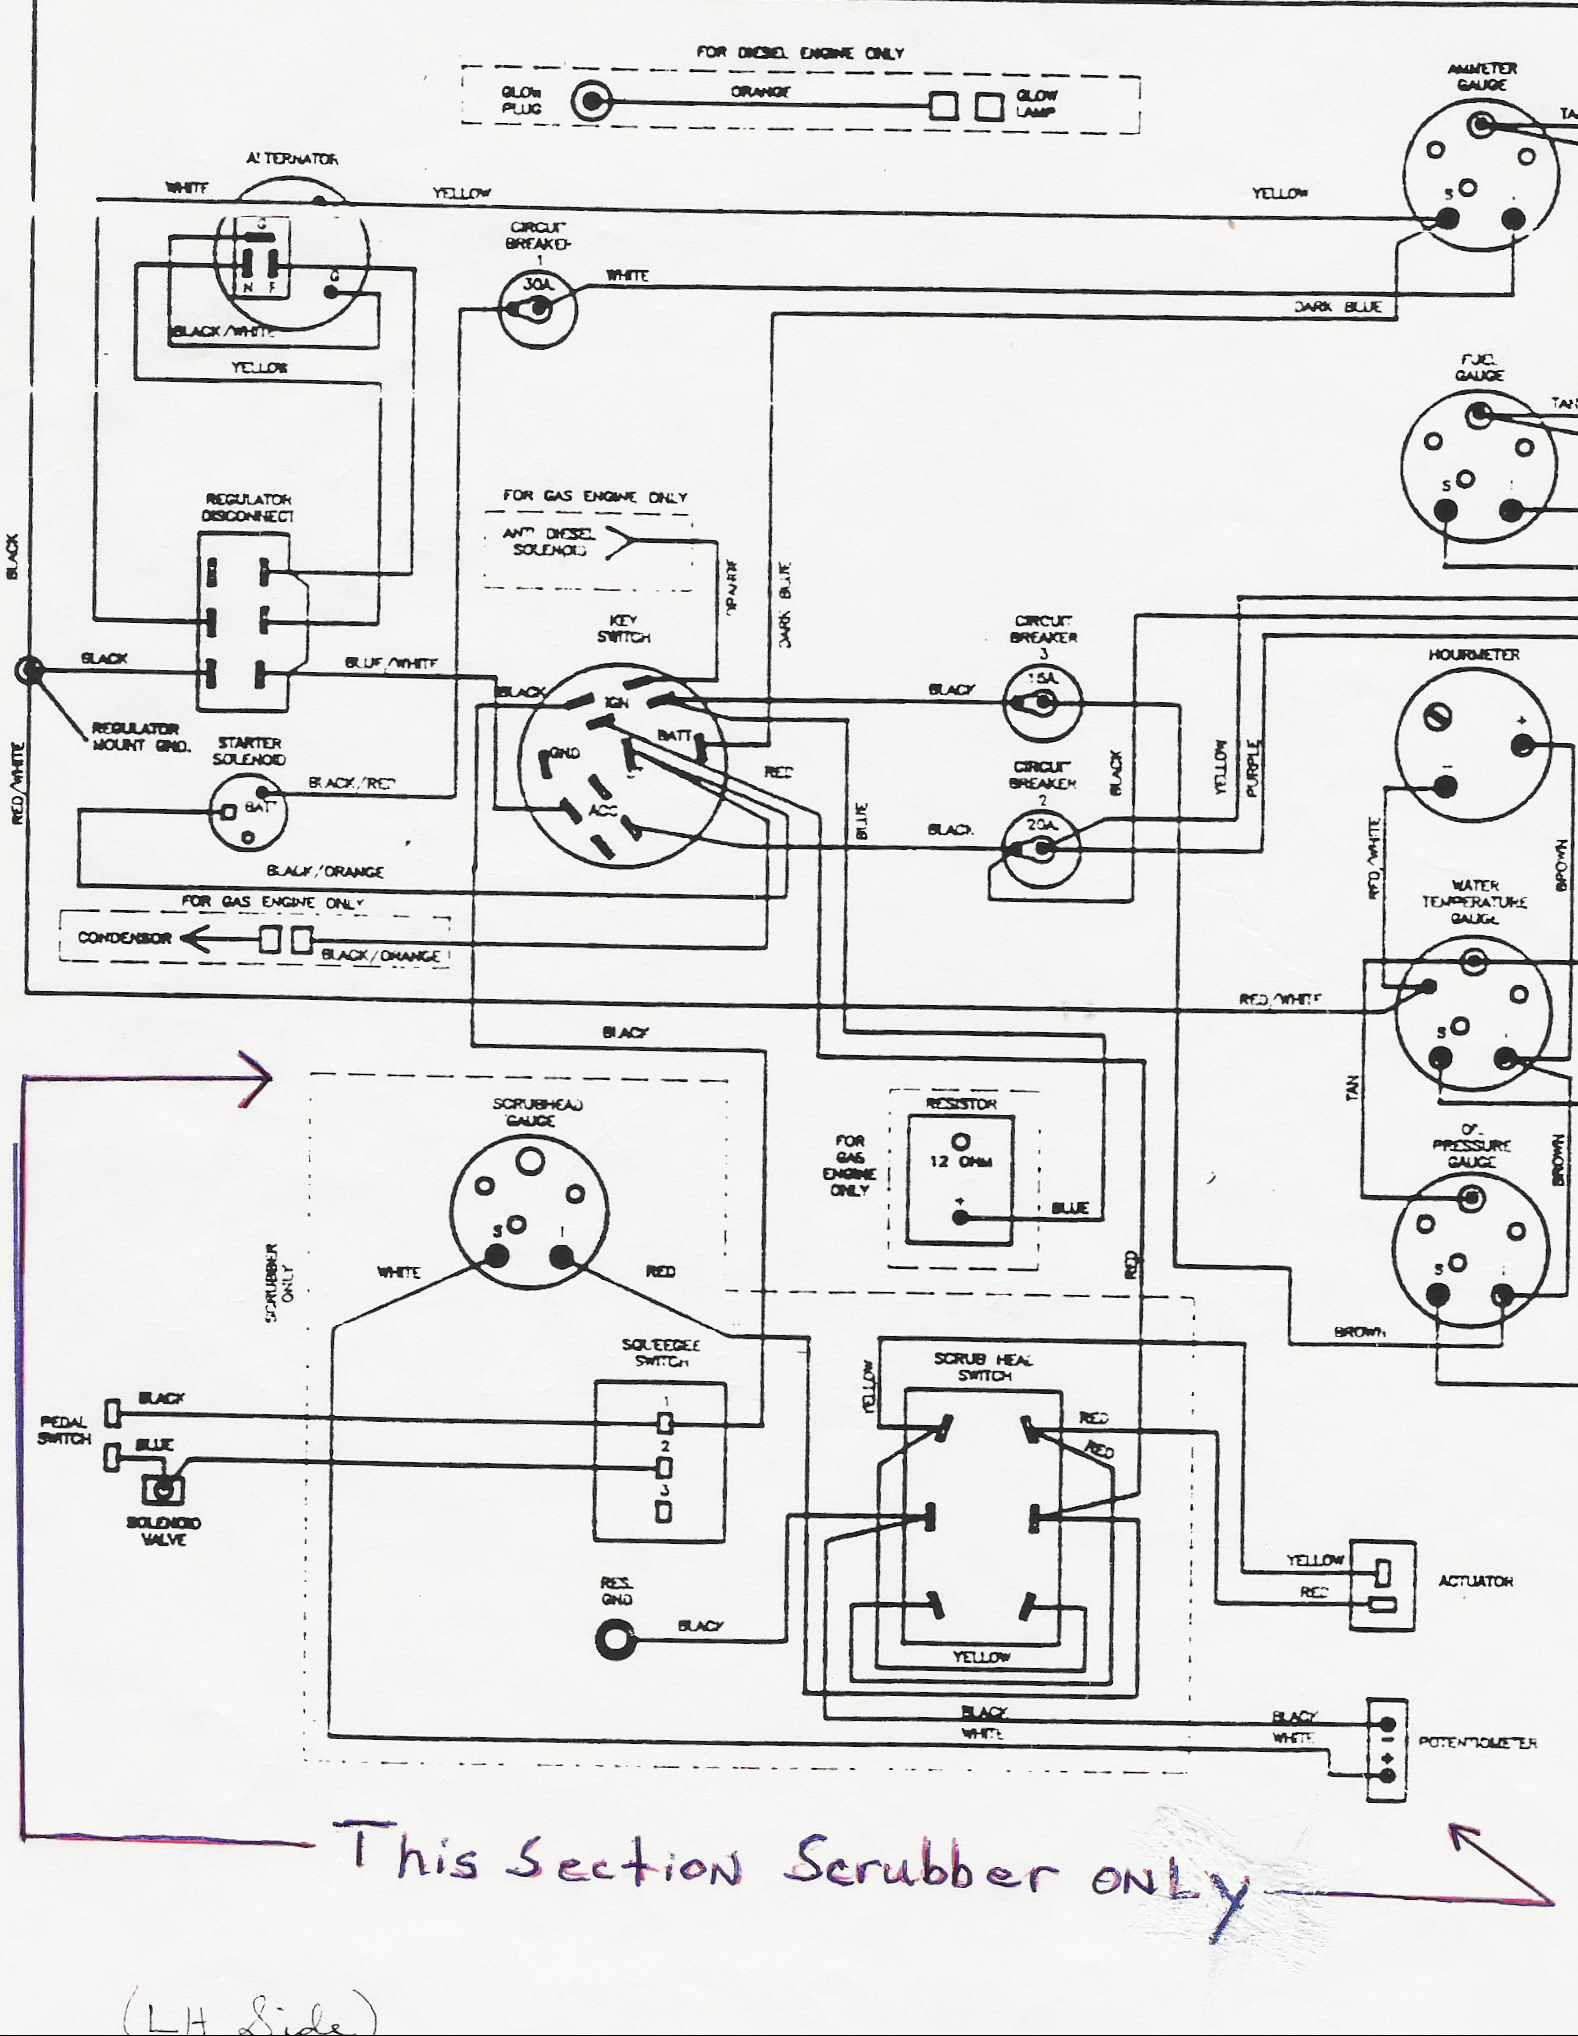 Directory Listing Of Powerboss  Engines  Toyota  Toyota 4p Wiring Diagrams  8xv Unit    Minuteman And